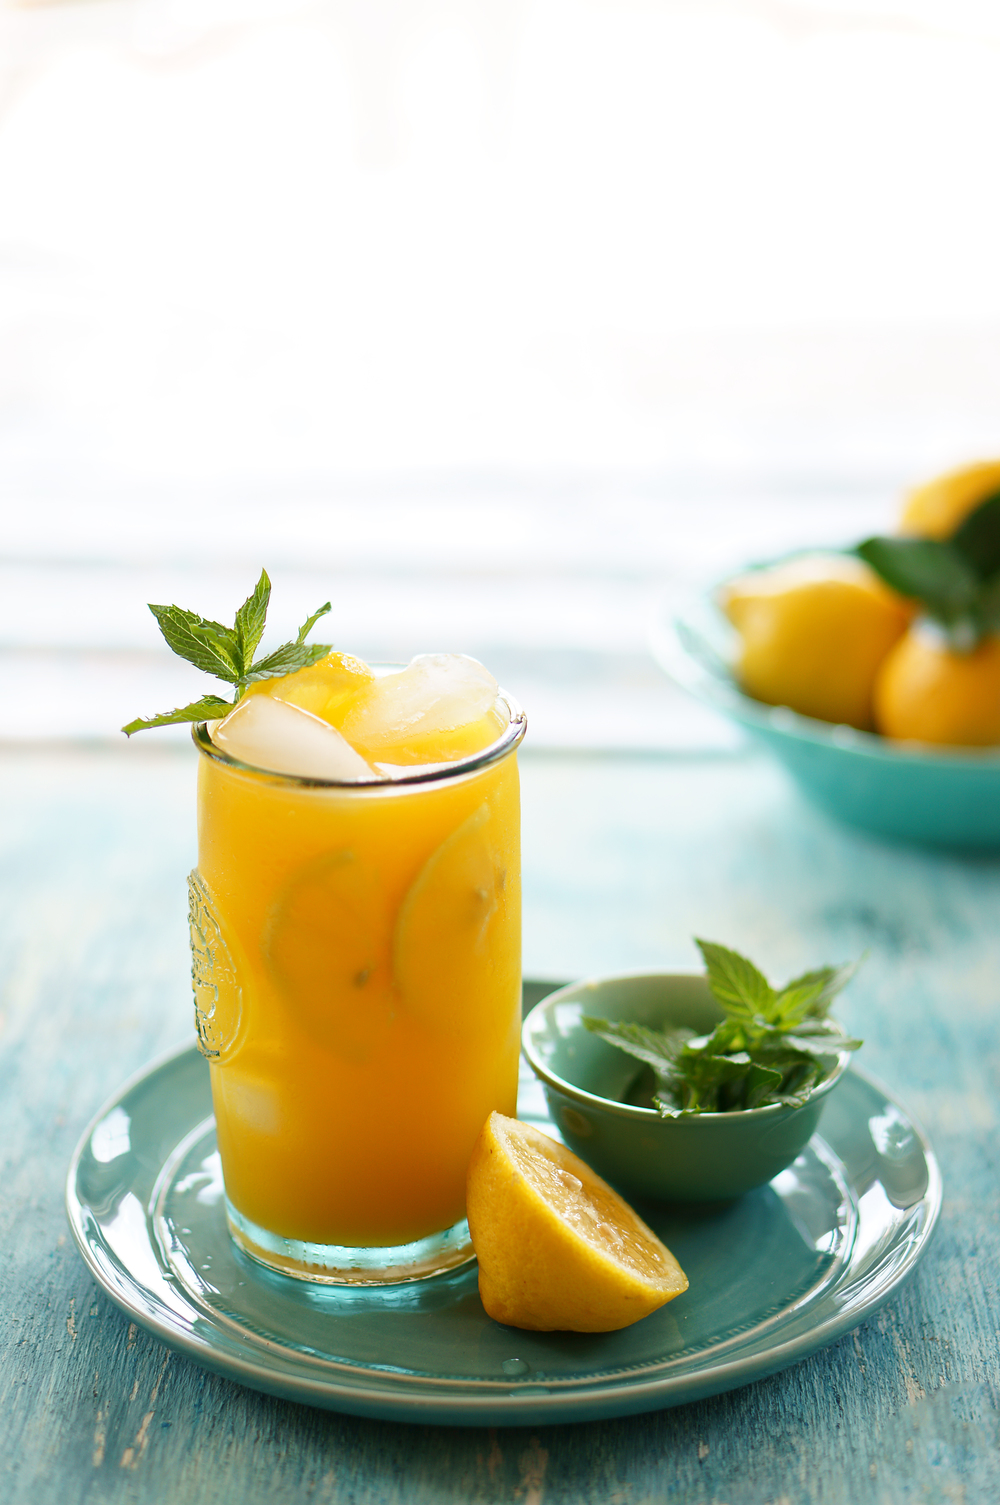 MangoCocktail-SimiJois-2014.jpg